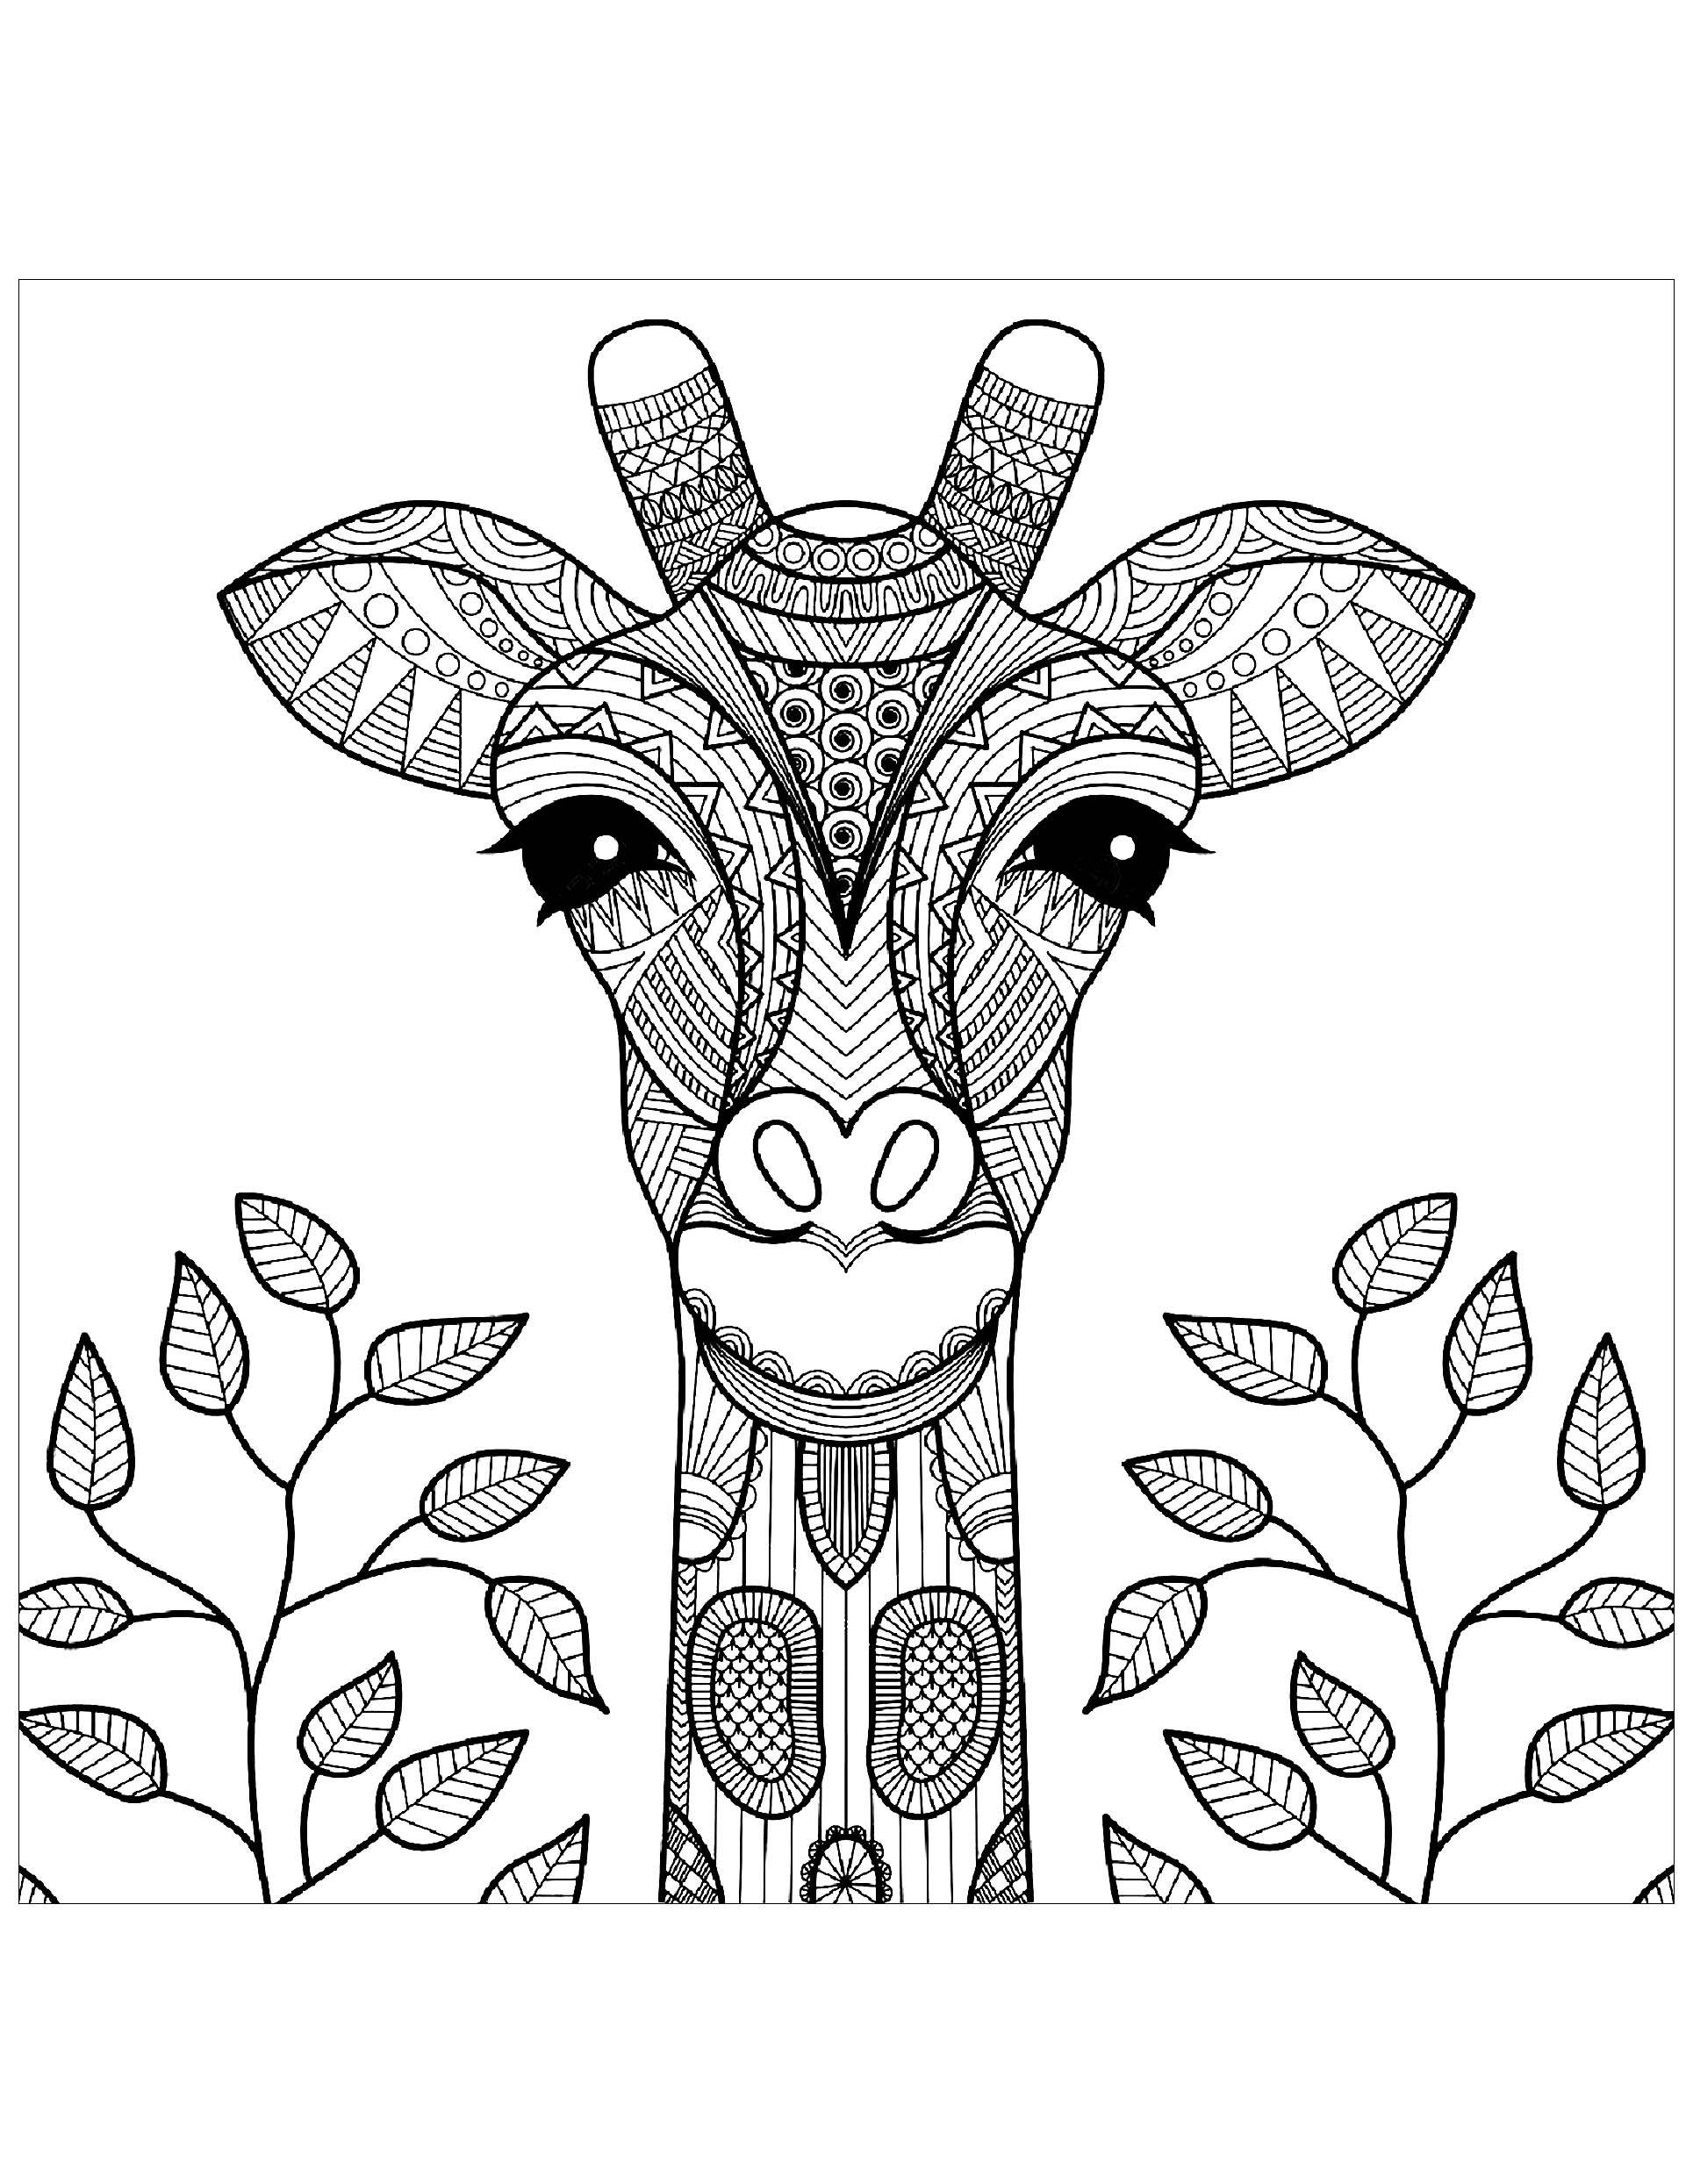 Giraffe Head With Leaves Giraffe Head With Leaves From Th Giraffe Coloring Pages Animal Coloring Books Coloring Books